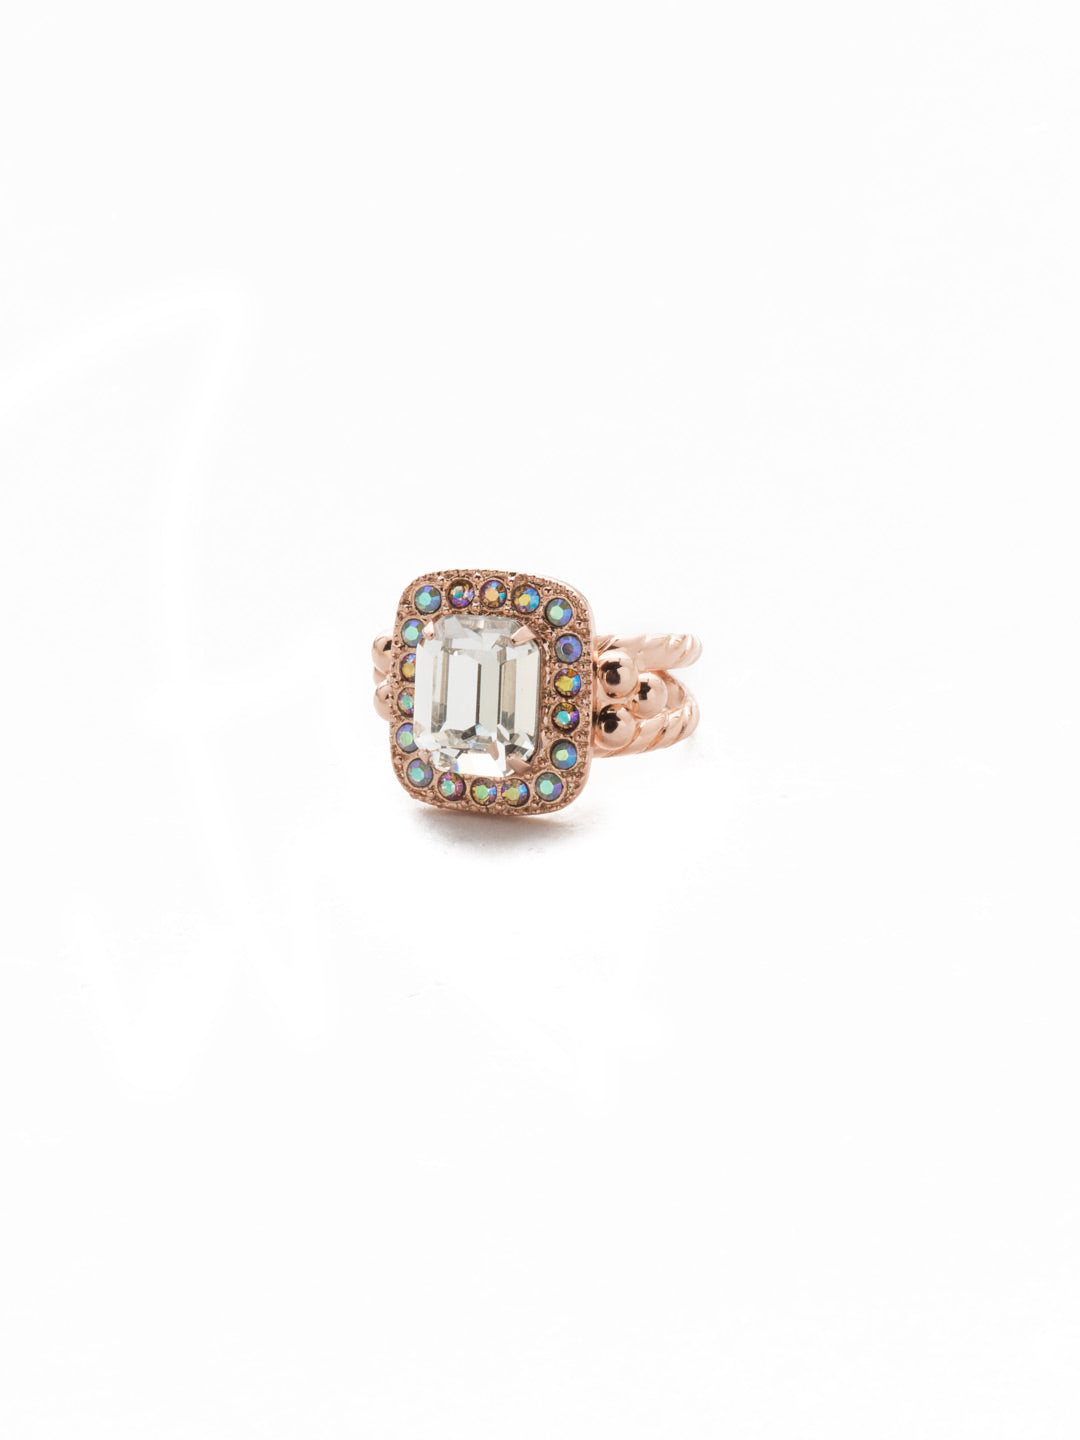 Opulent Octagon Cocktail Ring - RDQ41RGROG